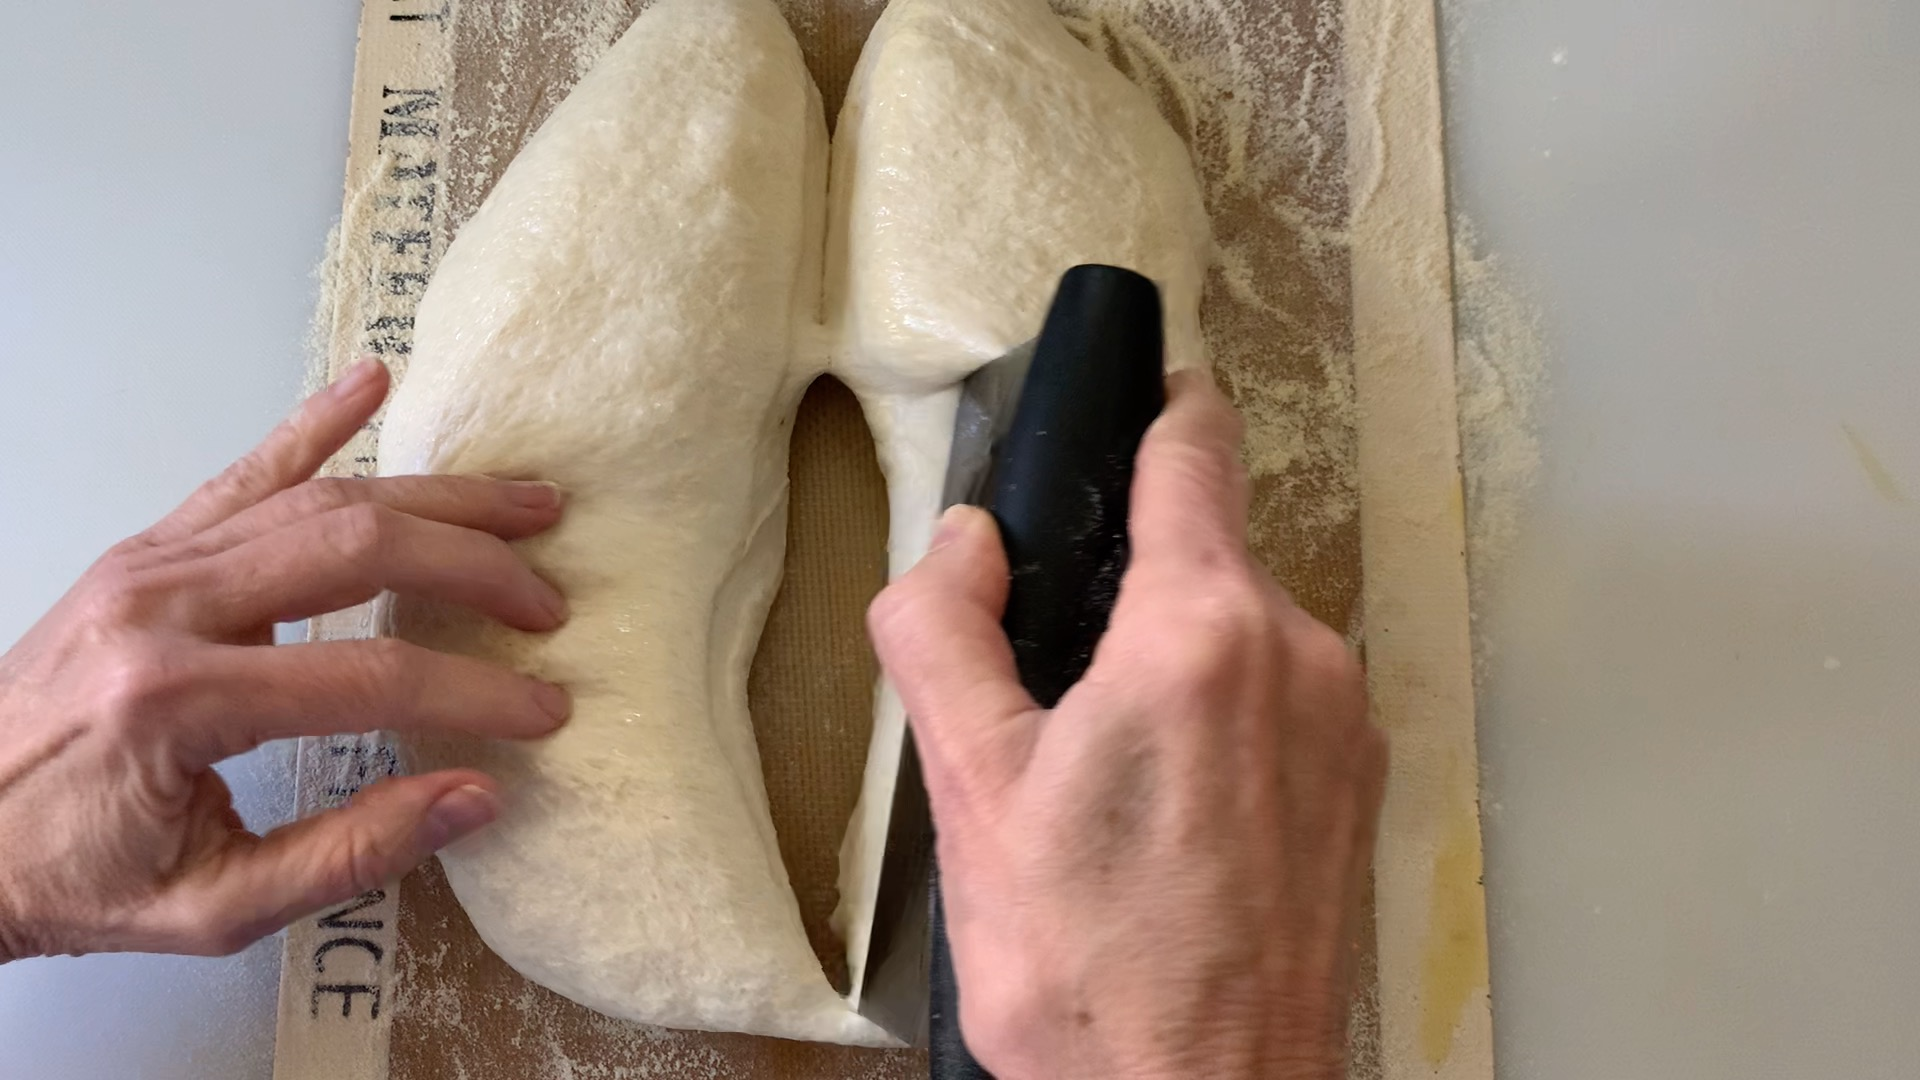 dividing the dough in two pieces with a bench scraper